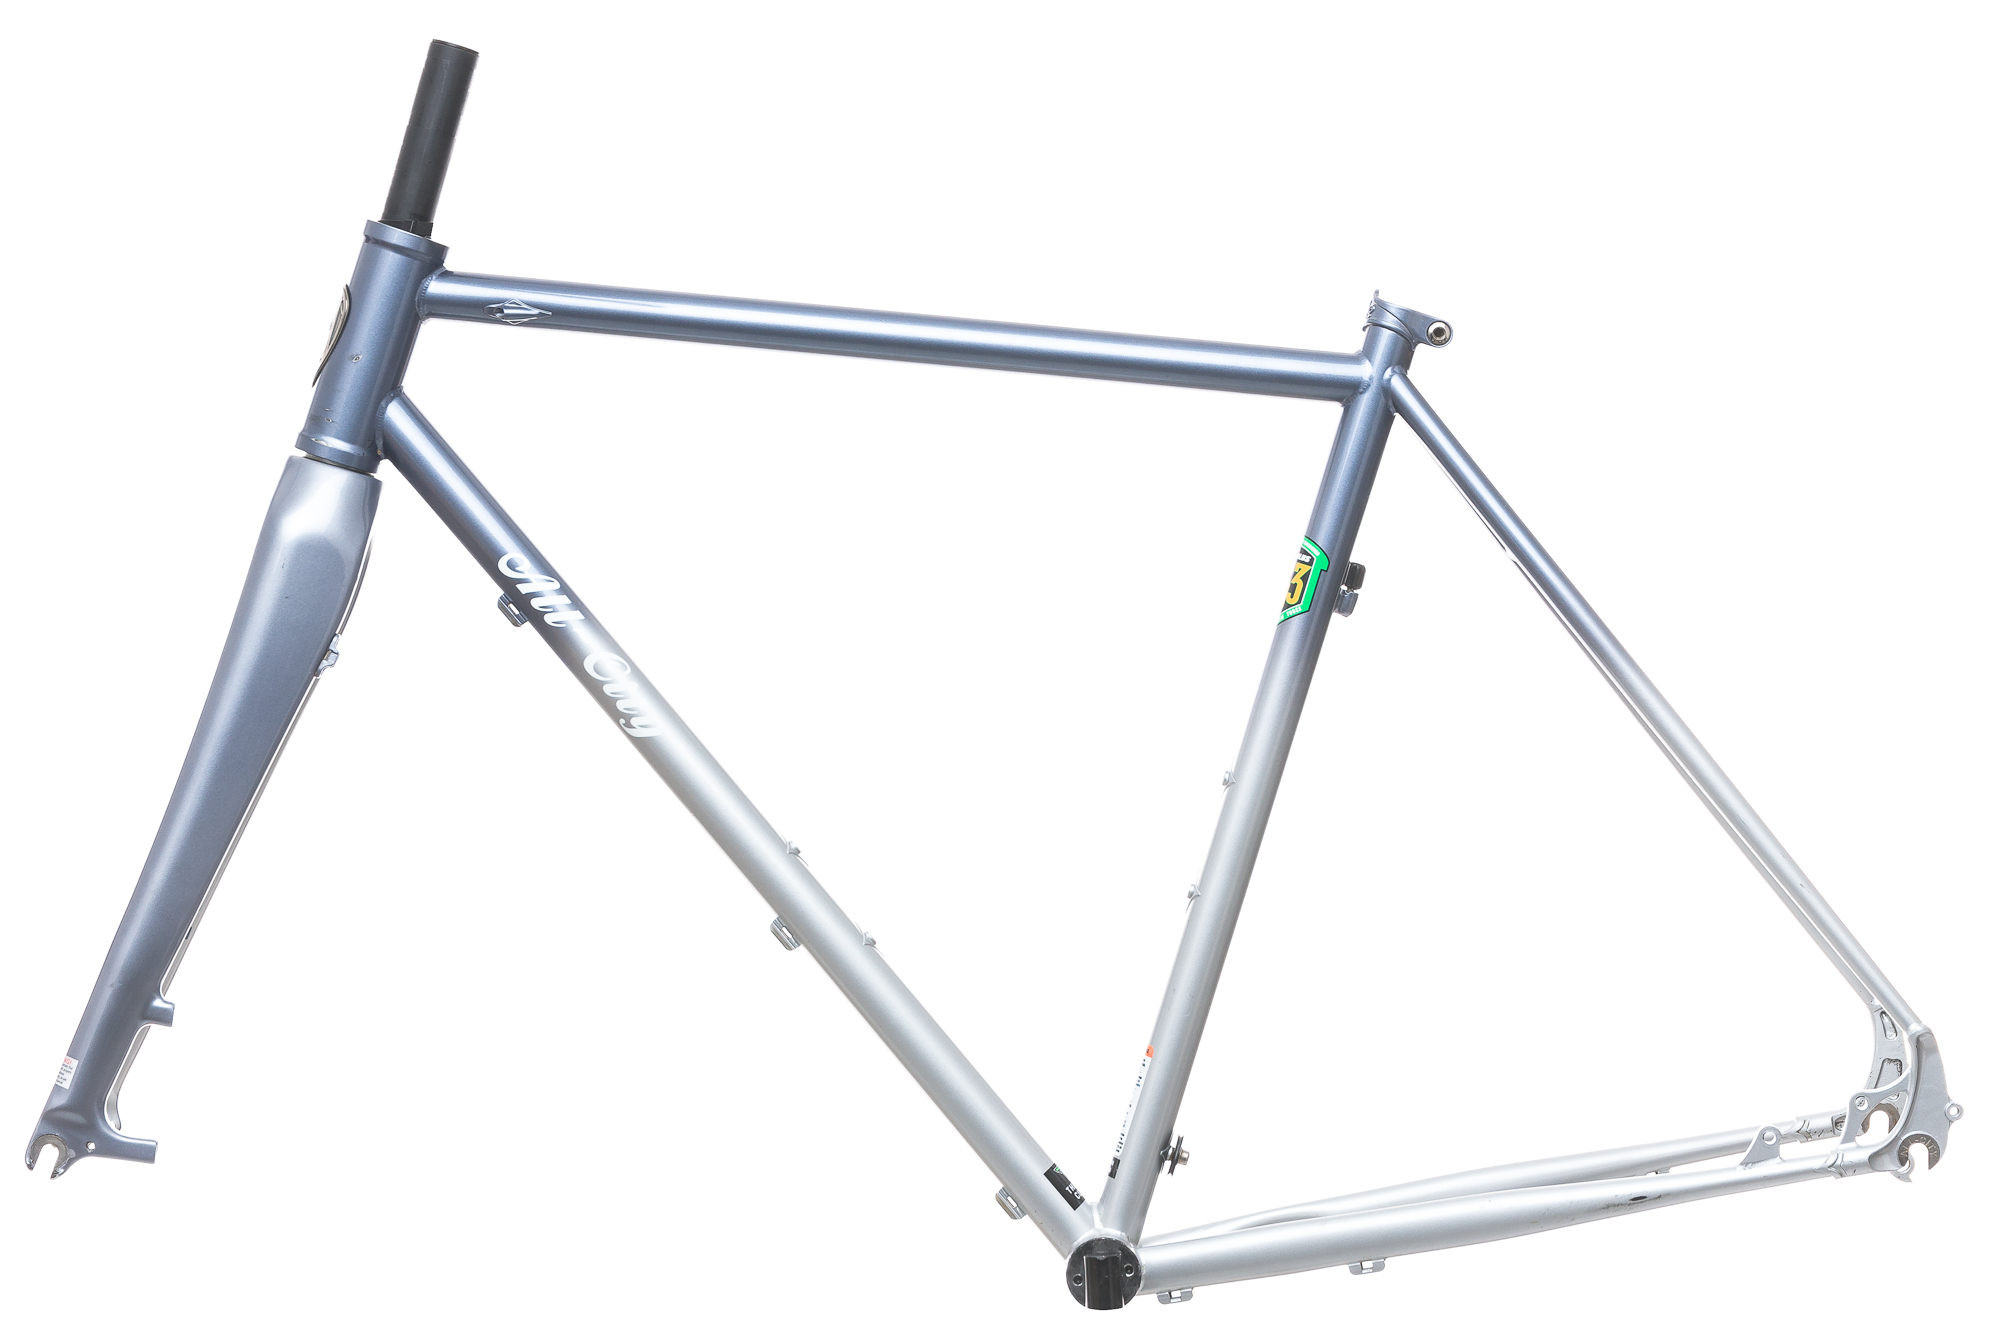 2015 All-City Macho King Cyclocross Frame Set 52cm 700c Disc ...